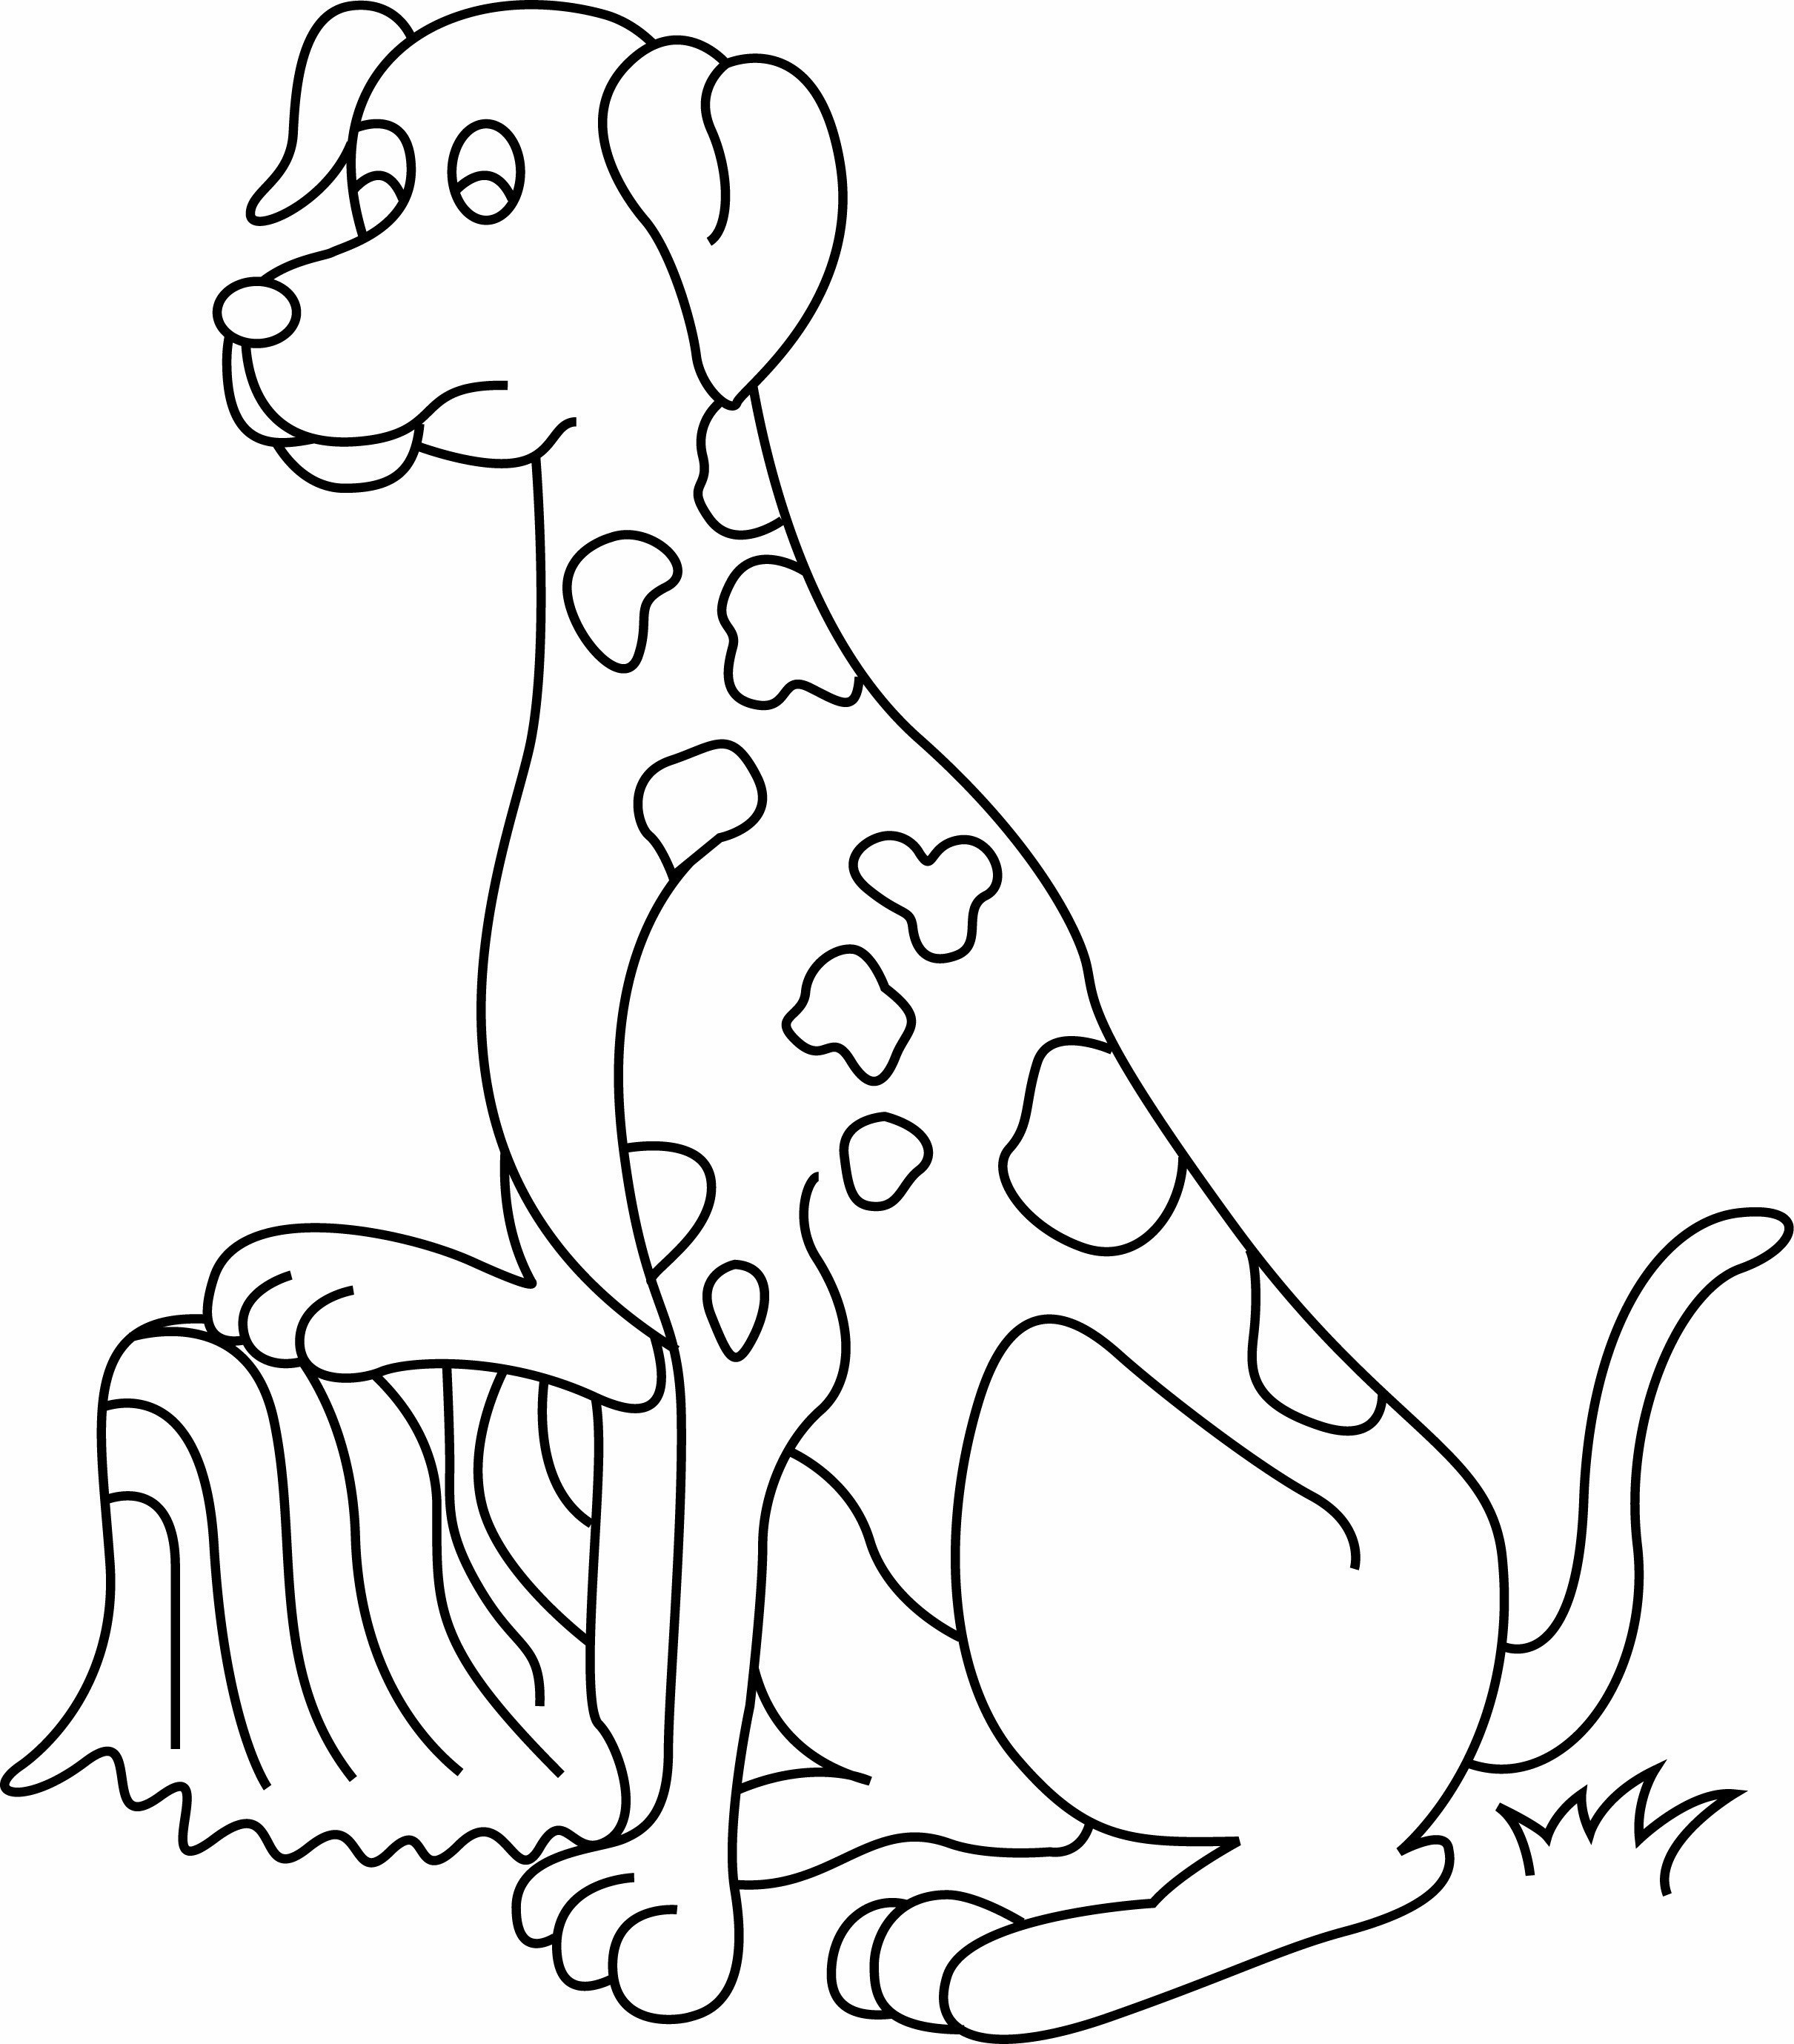 Coloriage   Animaux  Chien 40   40 Doigts